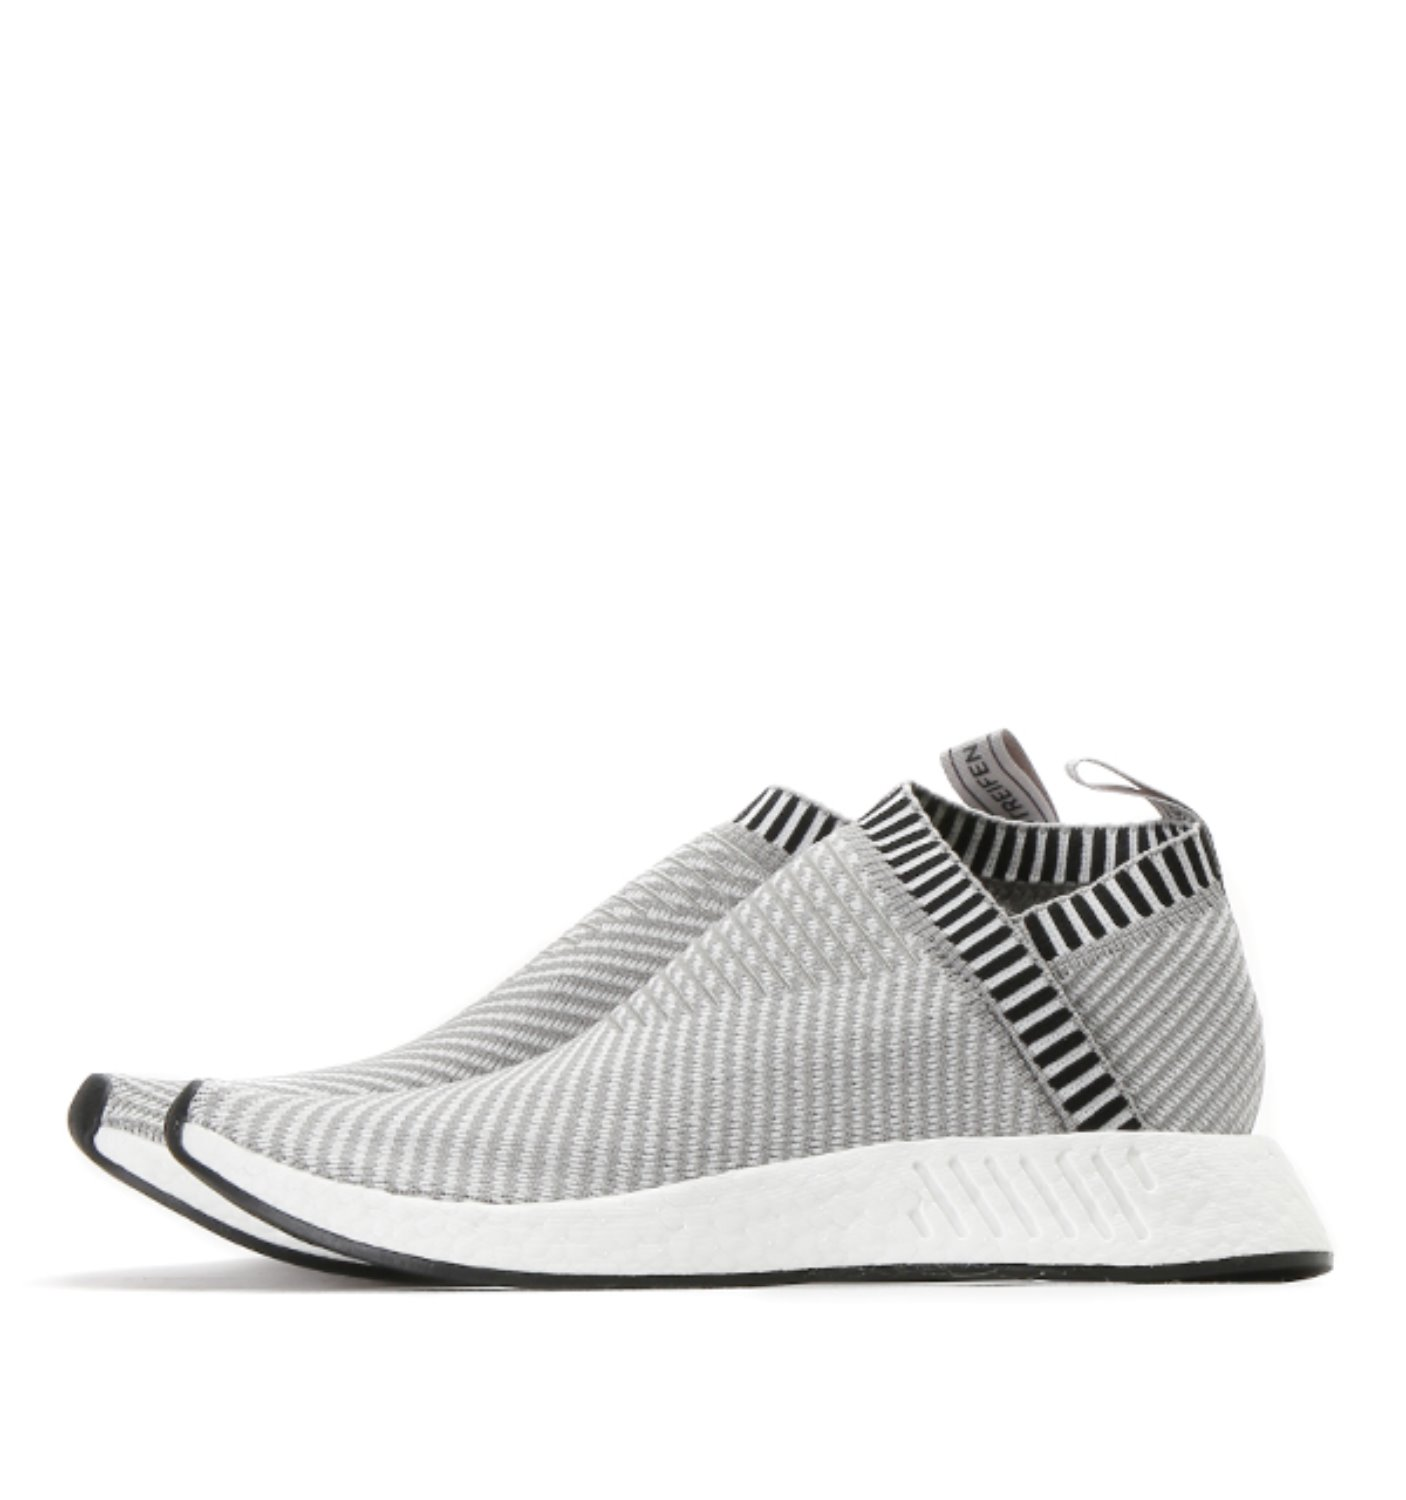 NMD CS2 PK DGH SOLID GREY(BA7187)